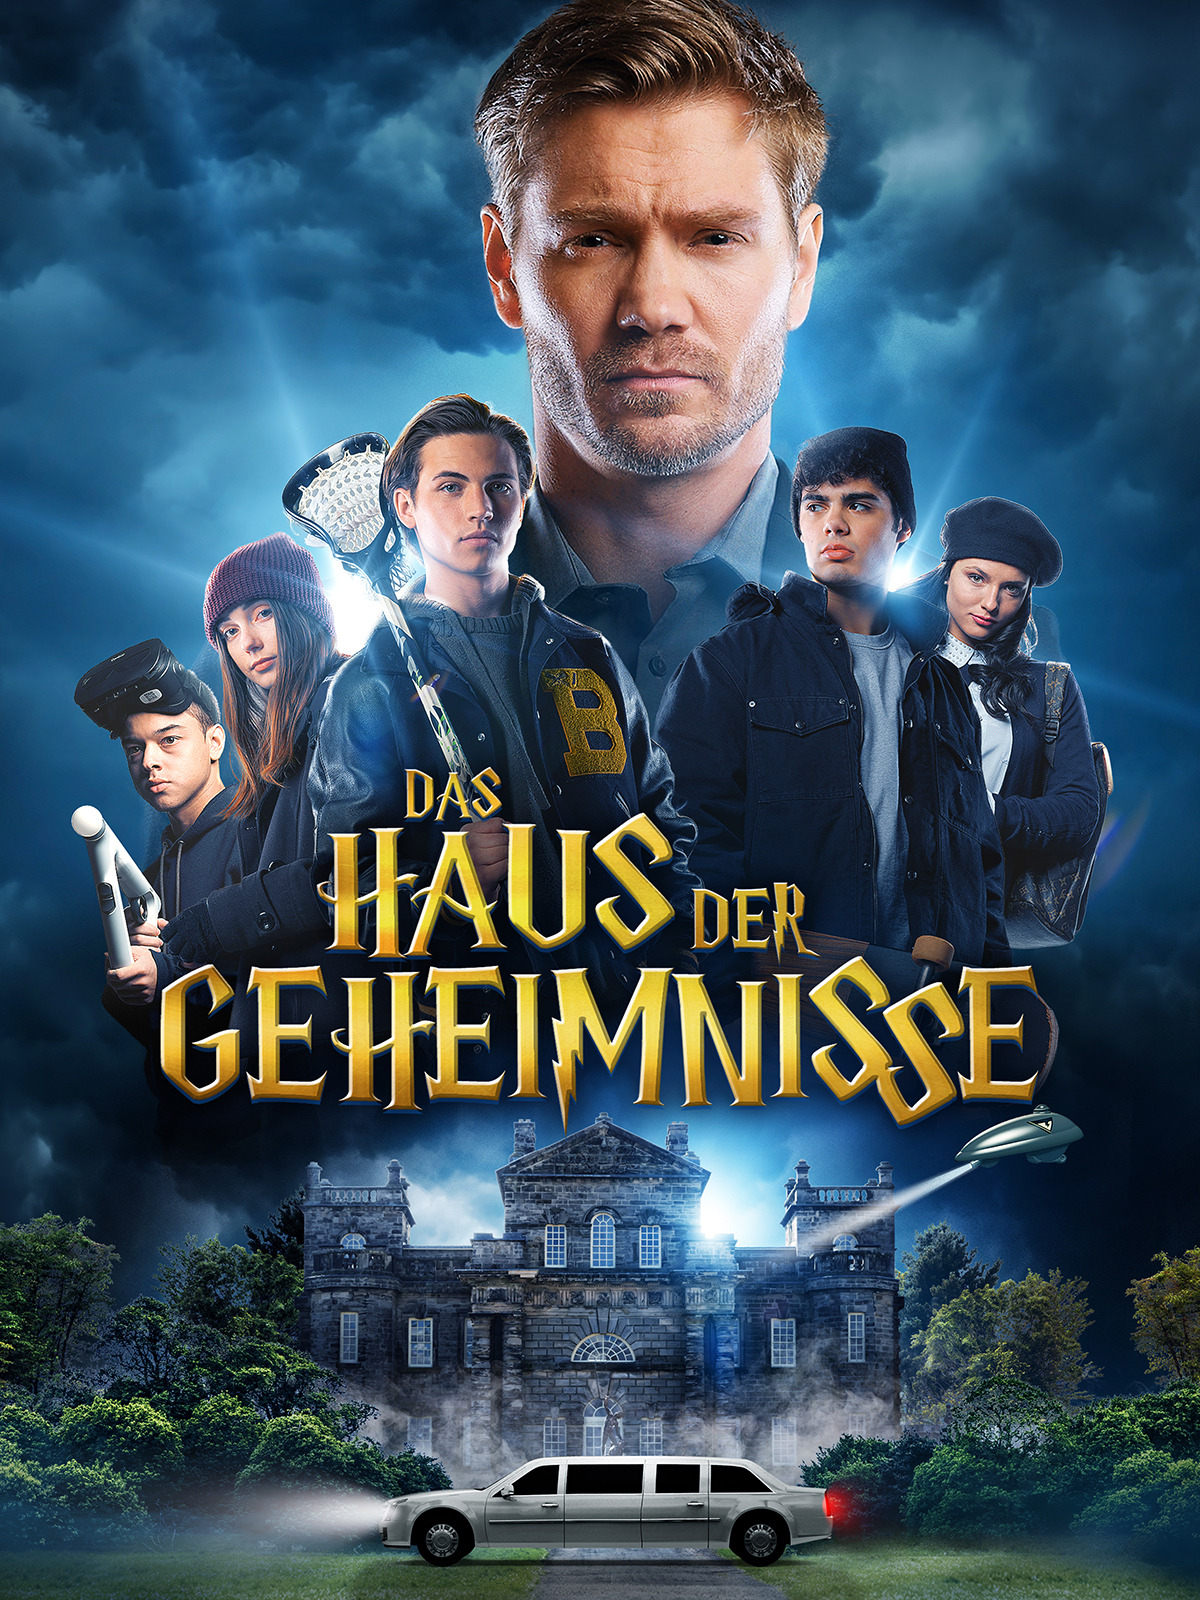 Das Haus der Geheimnisse